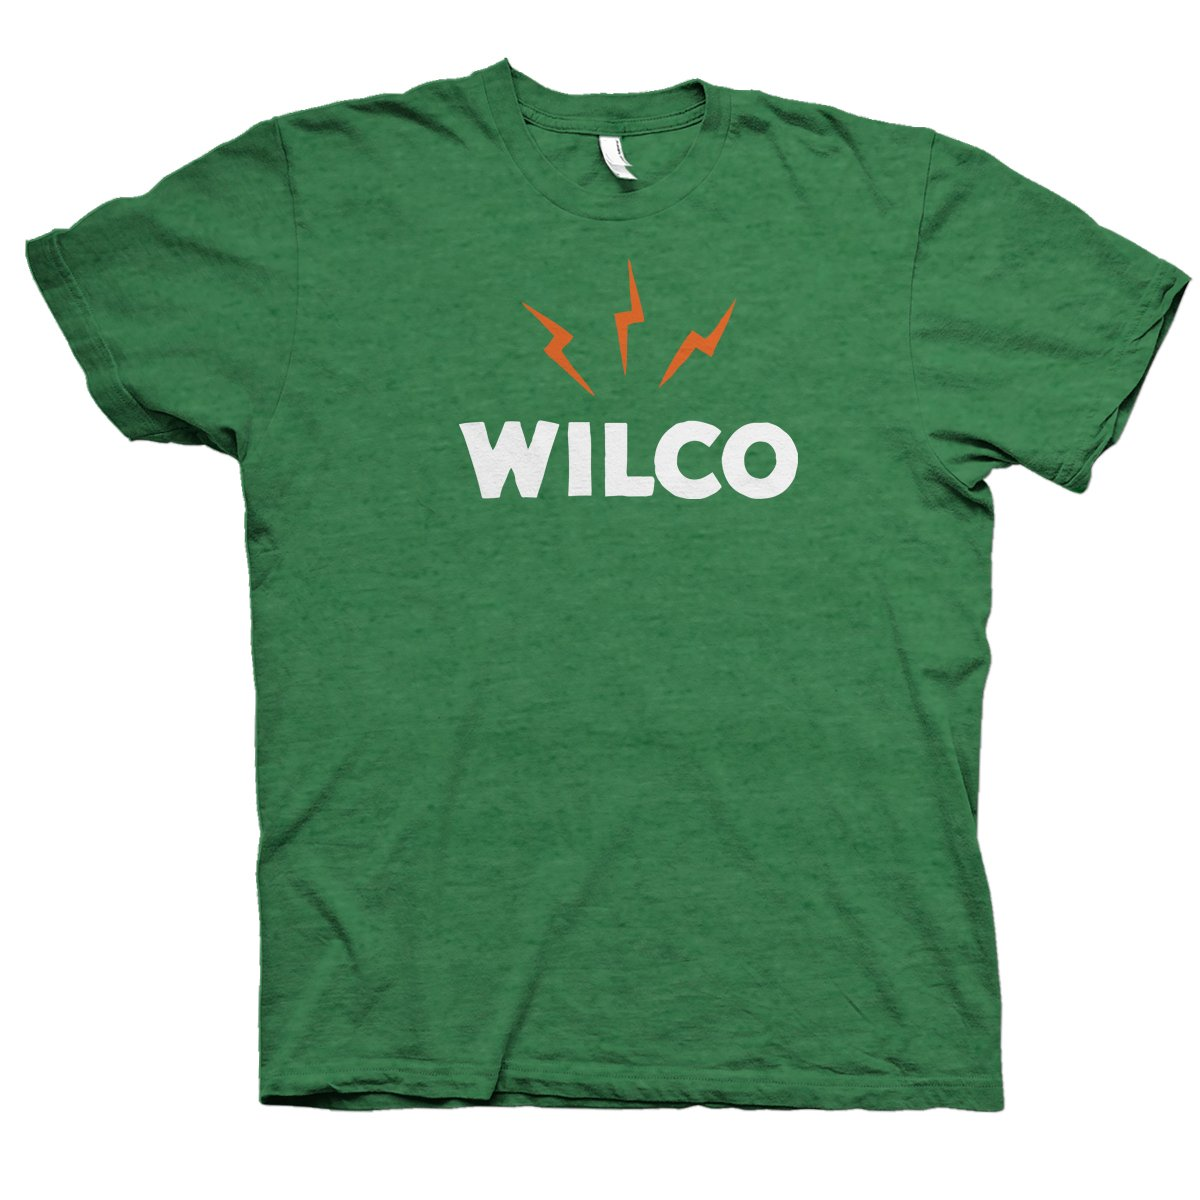 Schmilco Tour T-Shirt